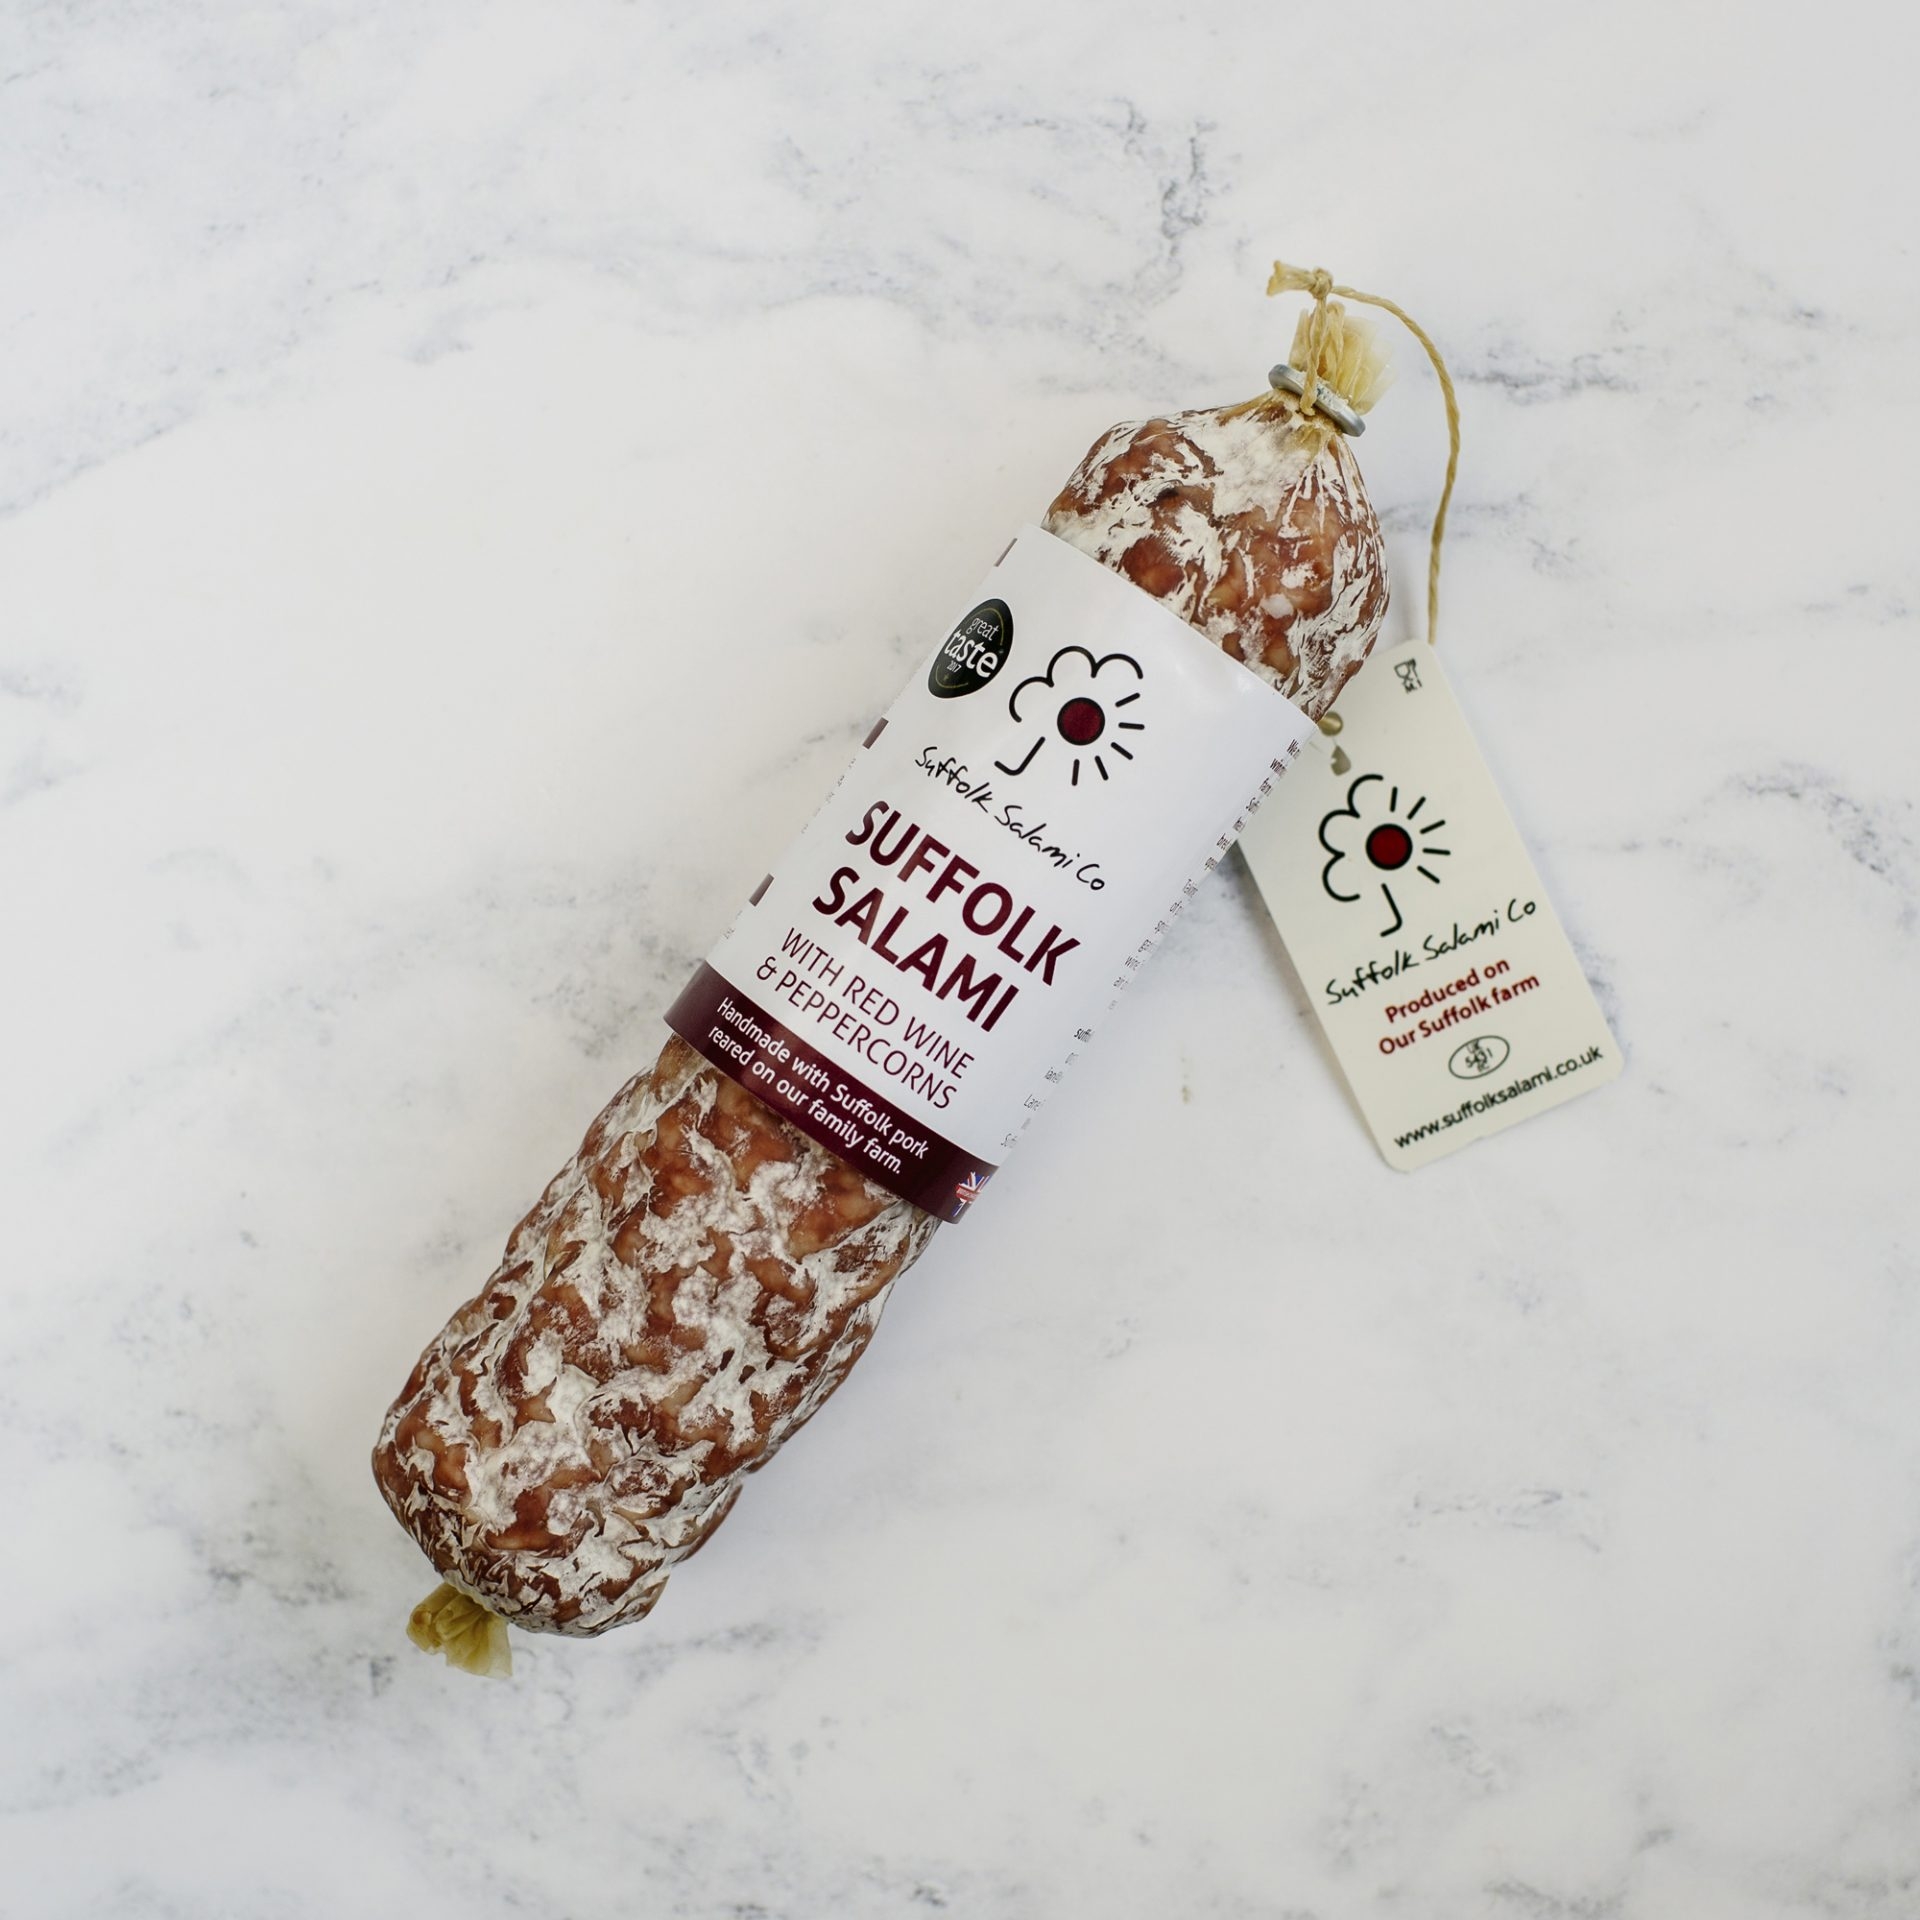 Suffolk Salami with Red Wine and Peppercorns